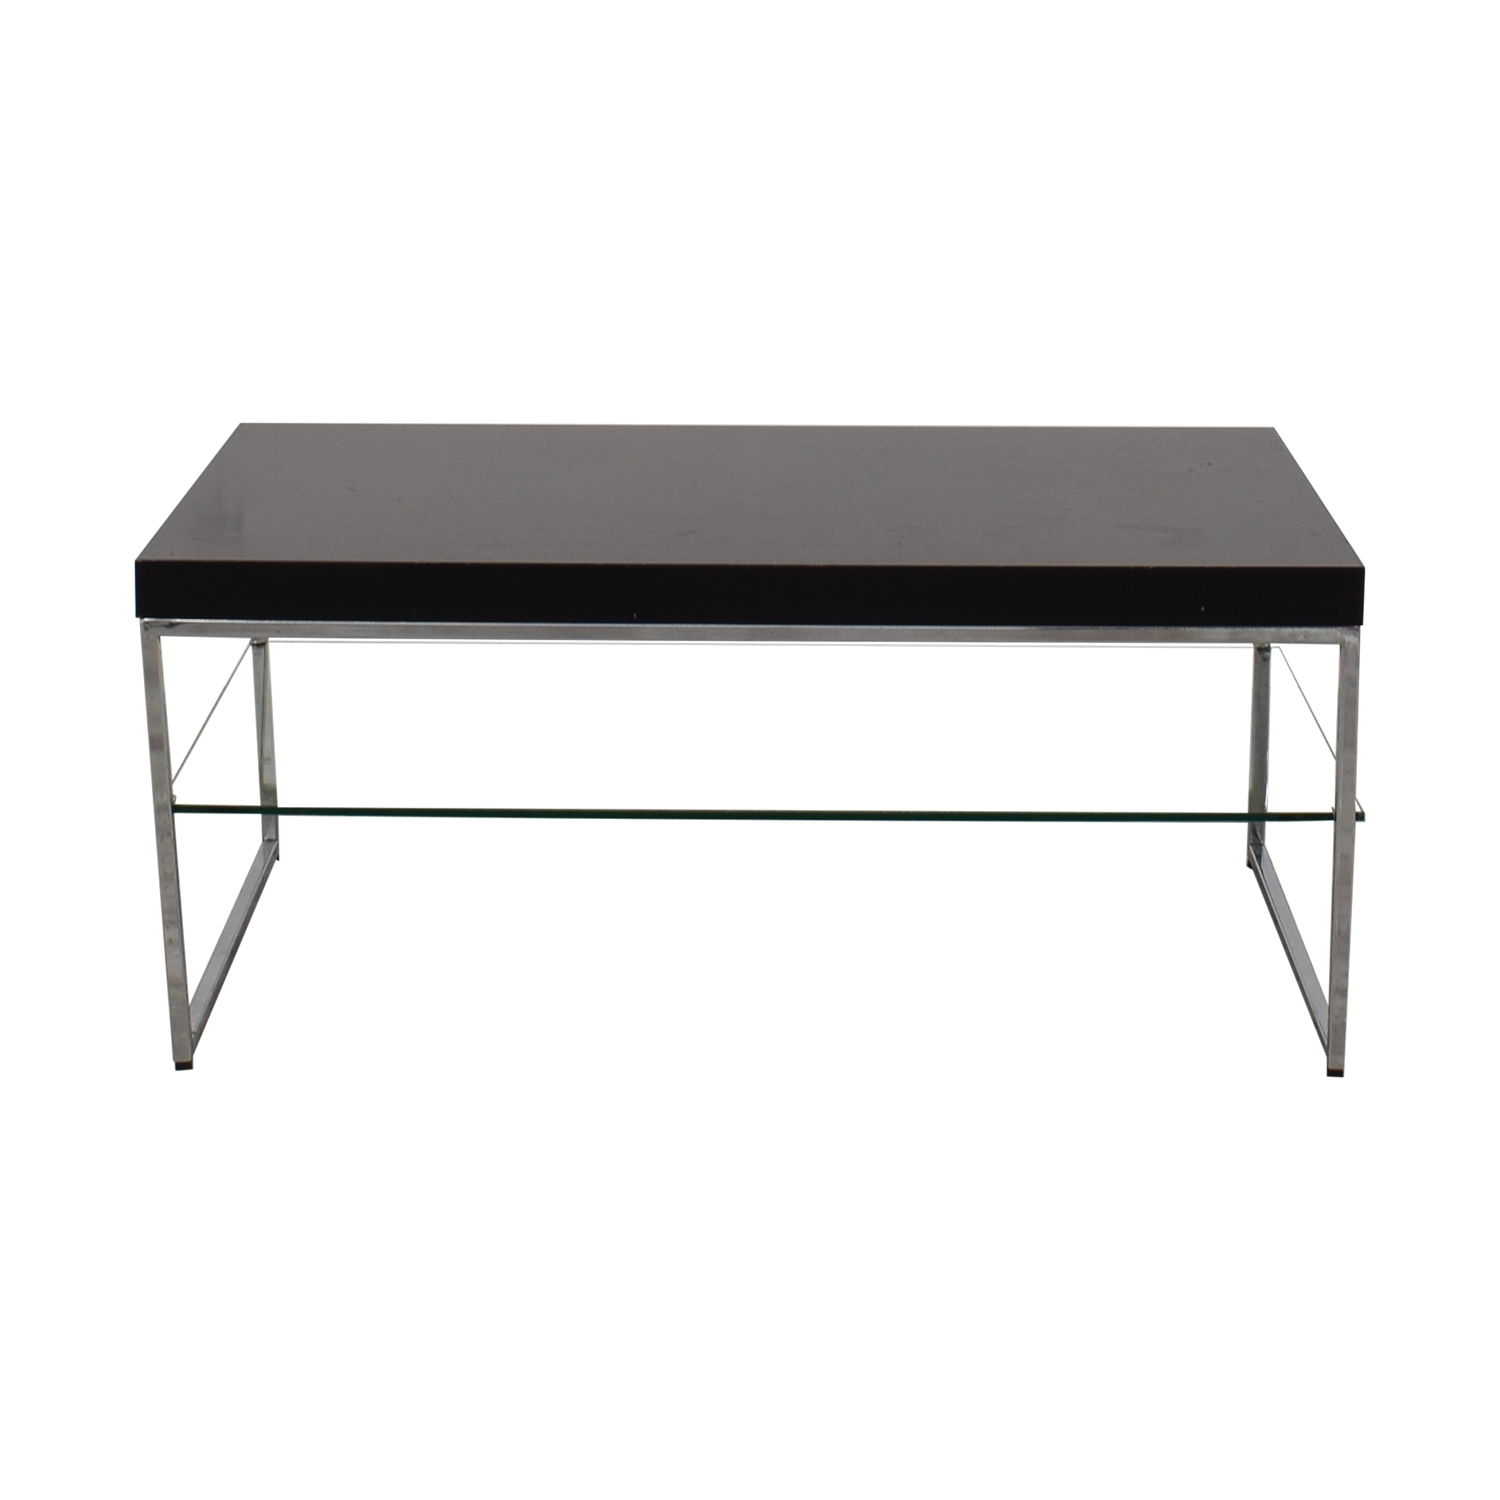 [%Best And Newest Slab Small Marble Coffee Tables With Antiqued Silver Base For 24% Off – Cb2 Cb2 Slab Small Marble Coffee Table With Antiqued|24% Off – Cb2 Cb2 Slab Small Marble Coffee Table With Antiqued In Recent Slab Small Marble Coffee Tables With Antiqued Silver Base%] (View 1 of 20)